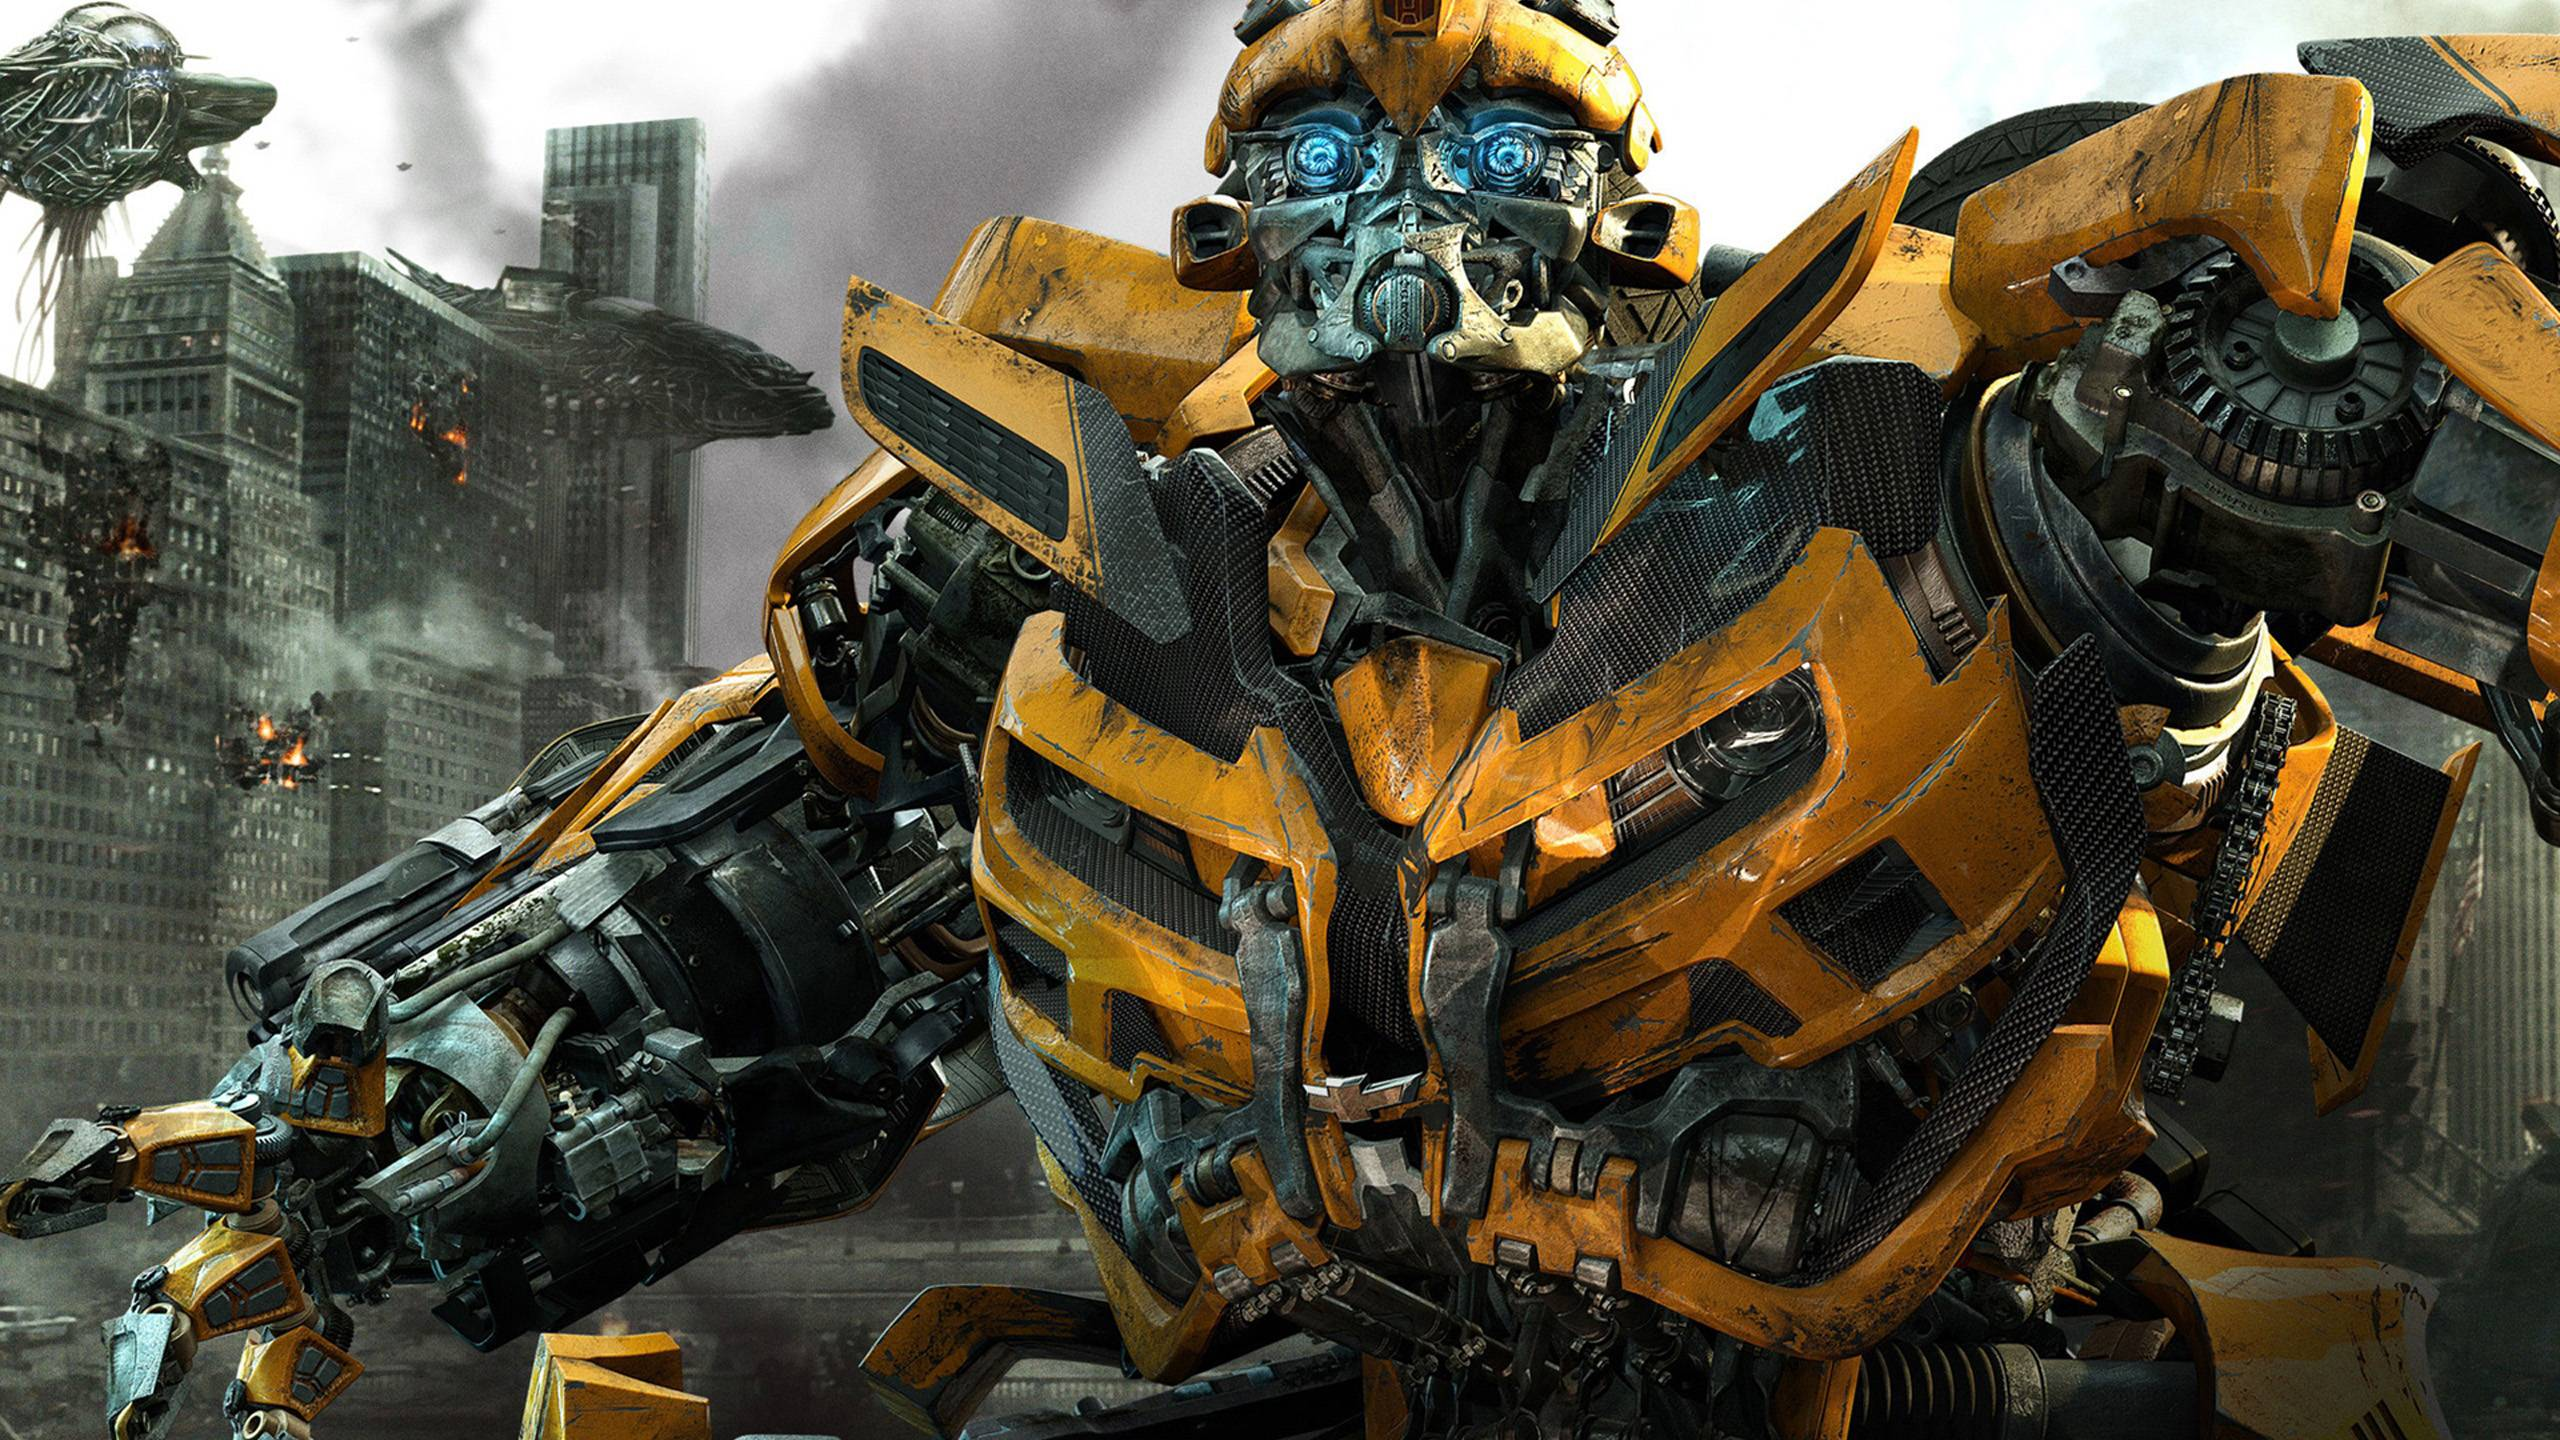 transformers wallpapers hd - wallpaper cave